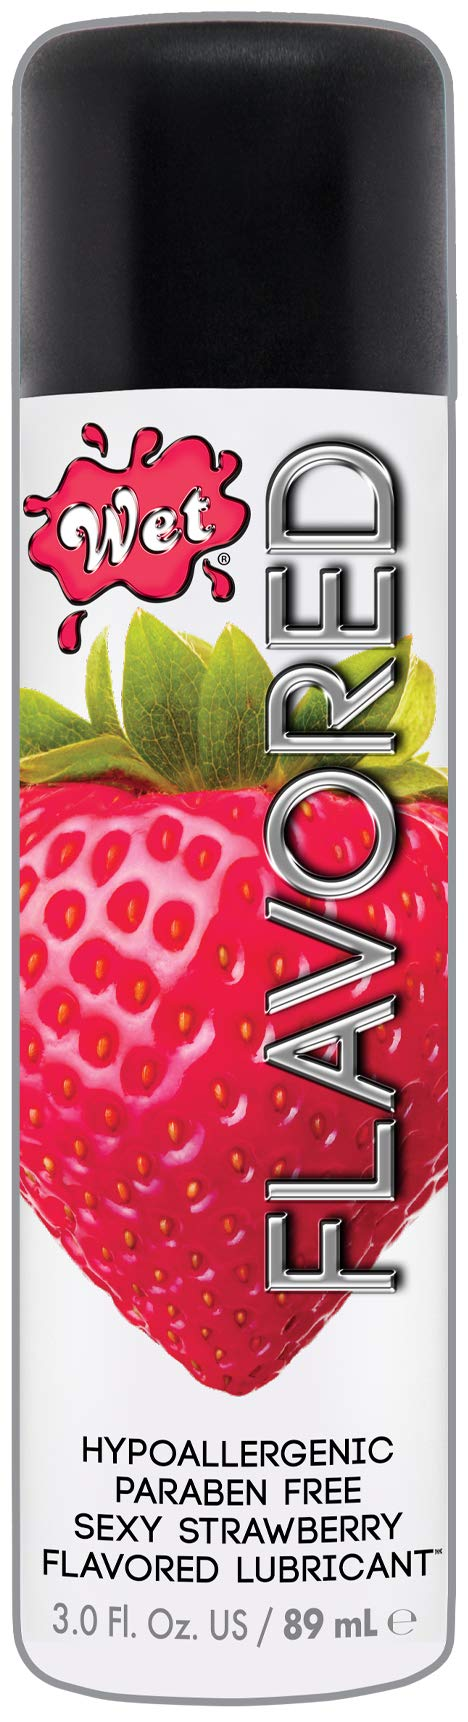 Wet Strawberry Flavored Lube - Water Based Edible Lubricant, 3.0 Ounce